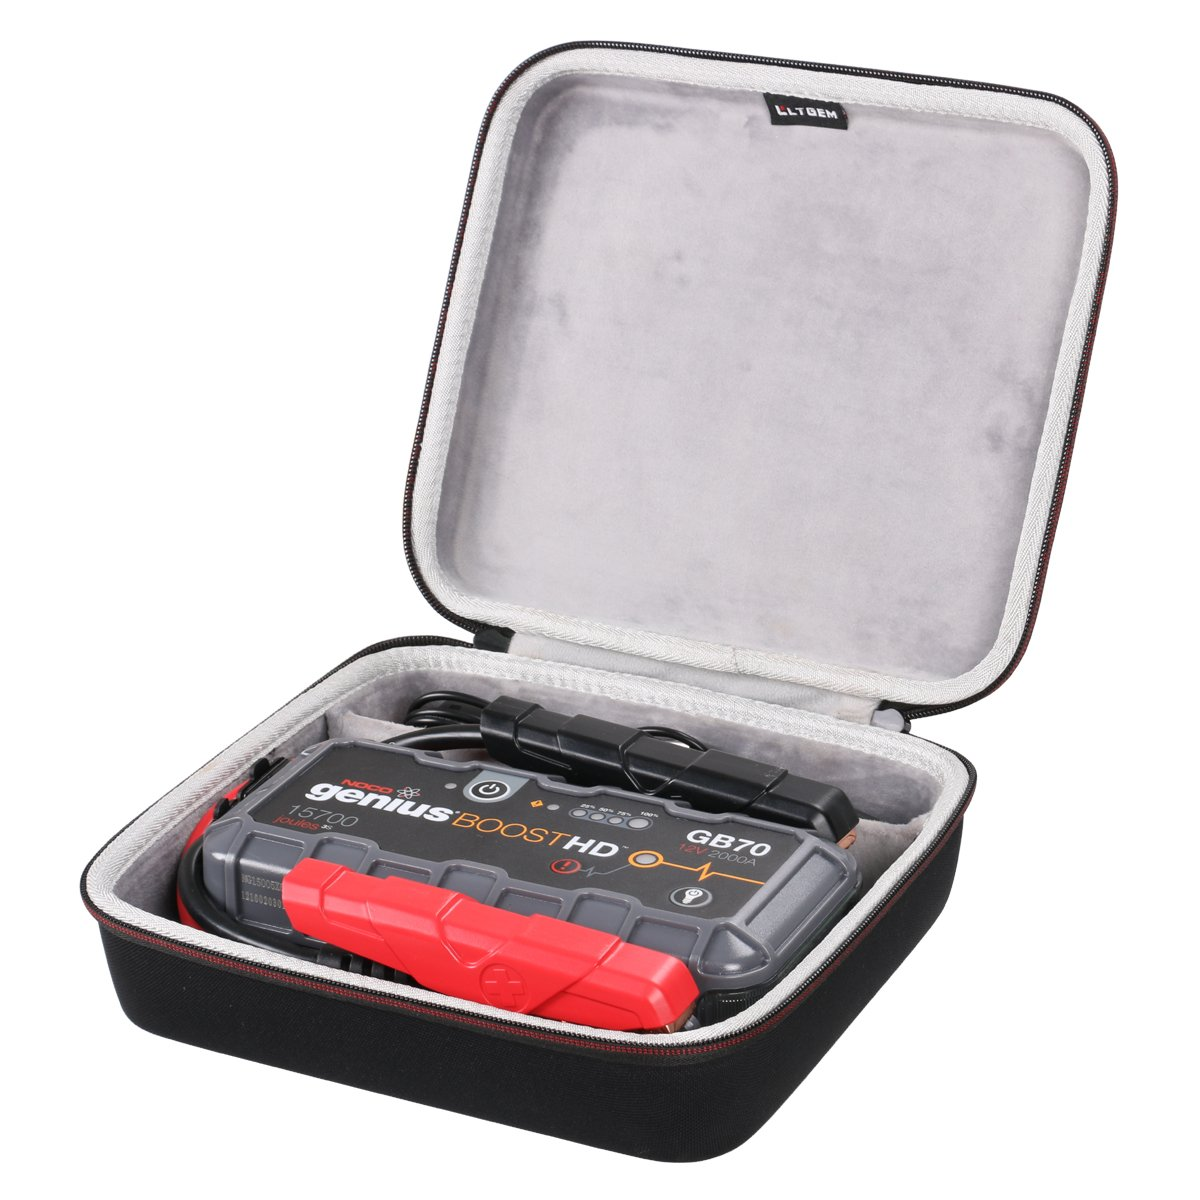 LTGEM EVA Hart Hü lle Reise Tragen Tasche Case fü r NOCO GB70 Genius Boost Plus 1000 Amp Ultra Safe 12 V Lithium Starting Aid Device CS137